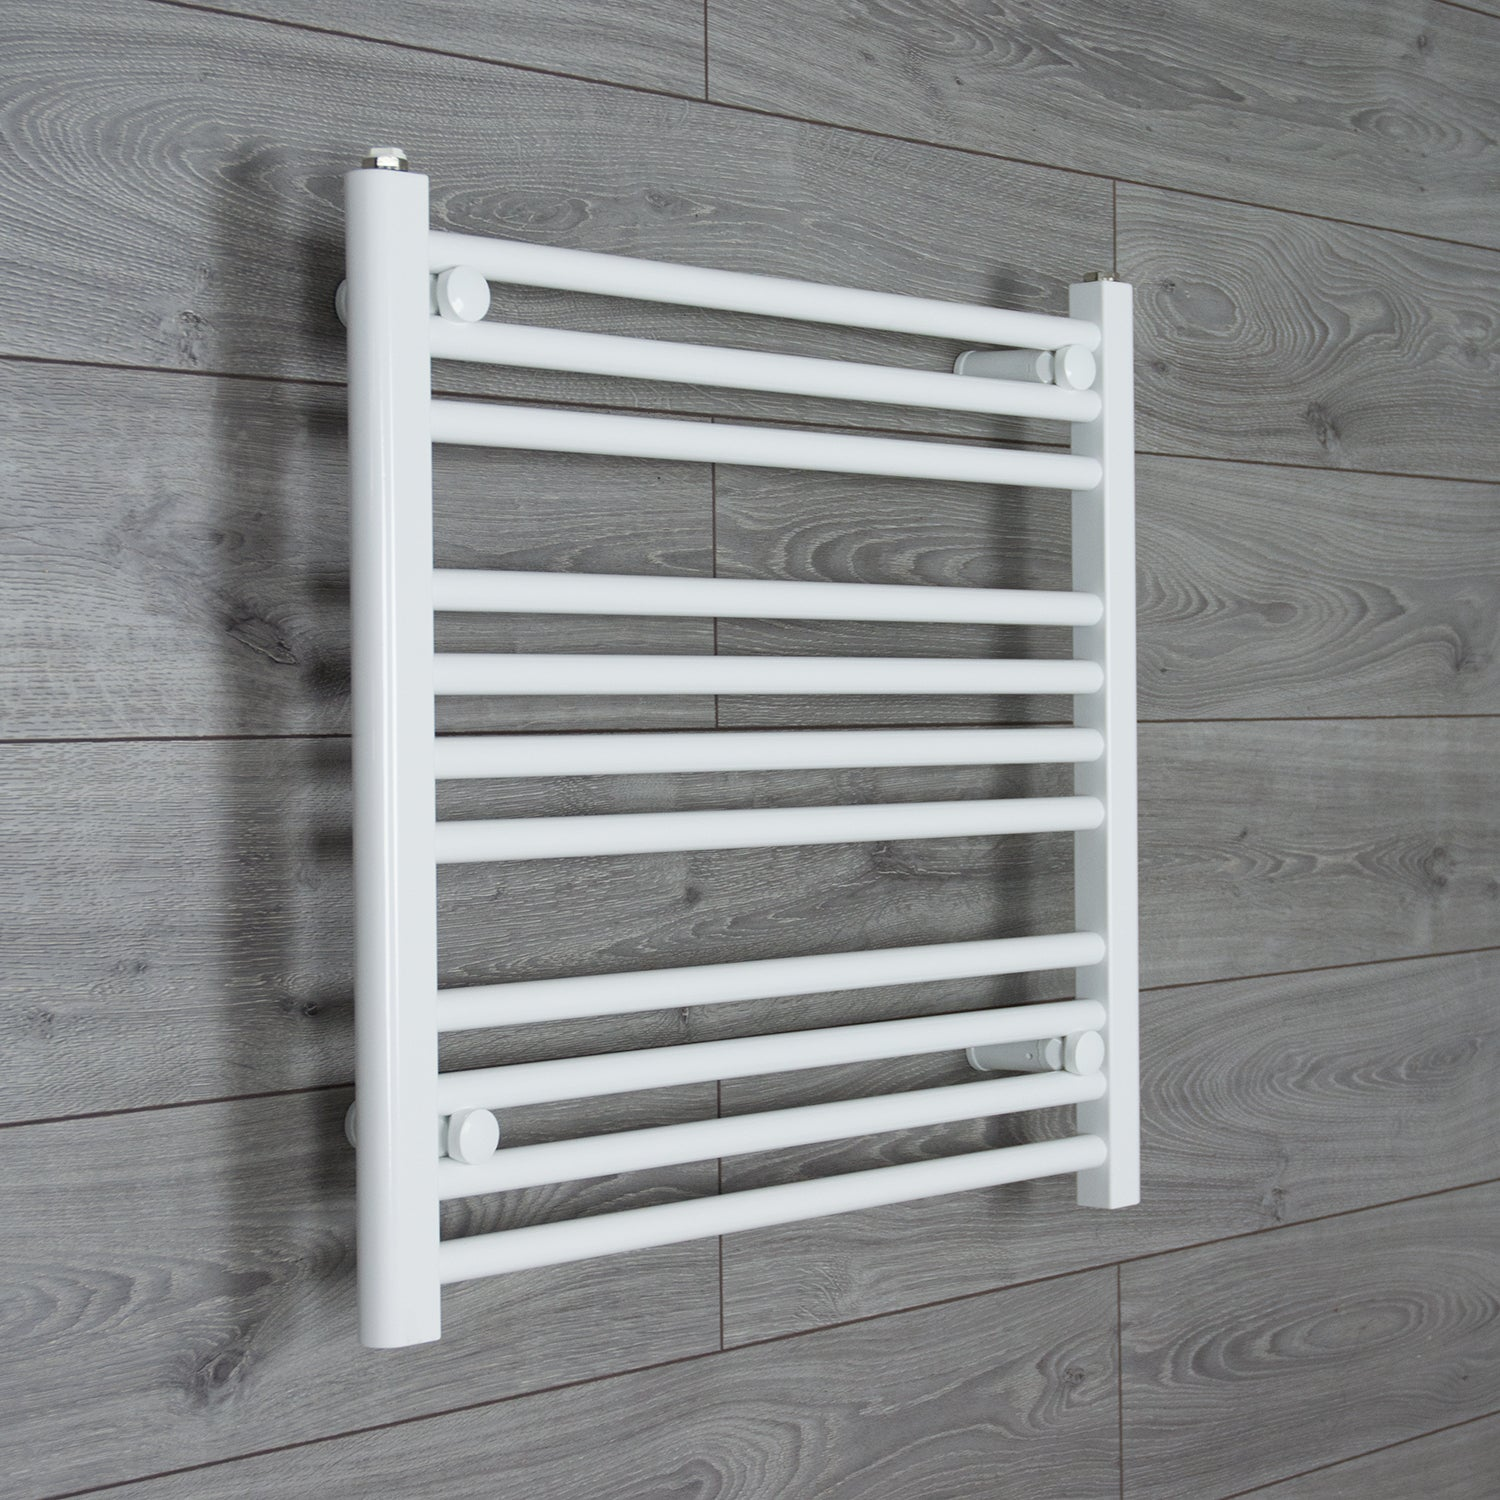 700mm Wide 600mm High Flat White Heated Towel Rail Radiator HTR,Towel Rail Only